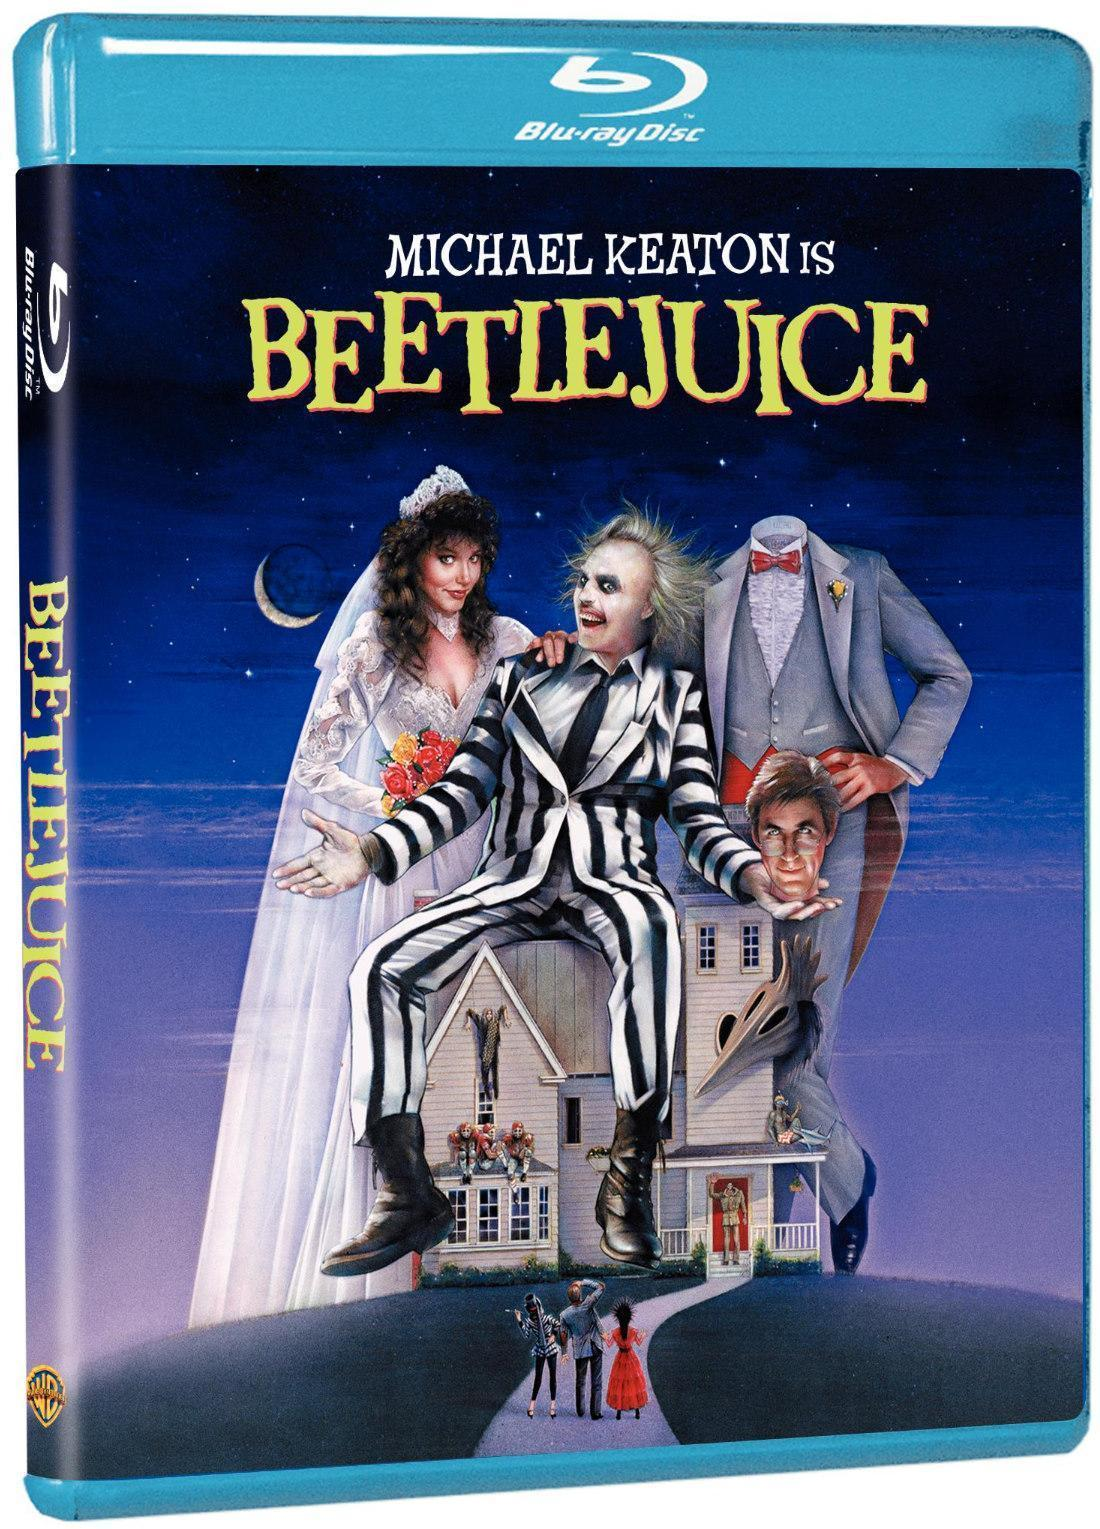 Beetlejuice 20th Anniversary Deluxe Edition Blu Ray Review